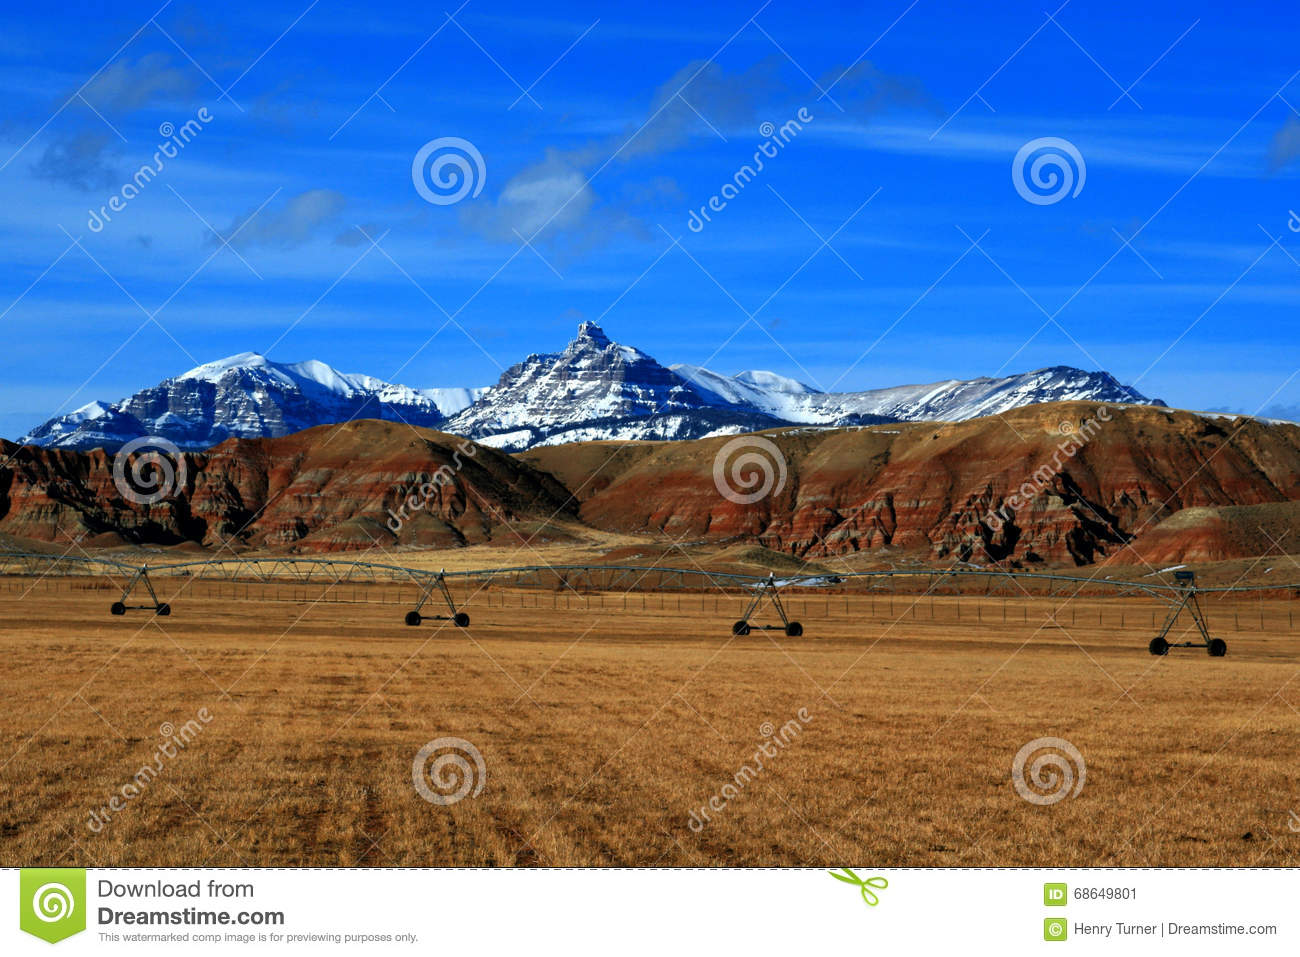 Dubois Wyoming Mountain Farming View Of Harvested Alfalfa Field In.